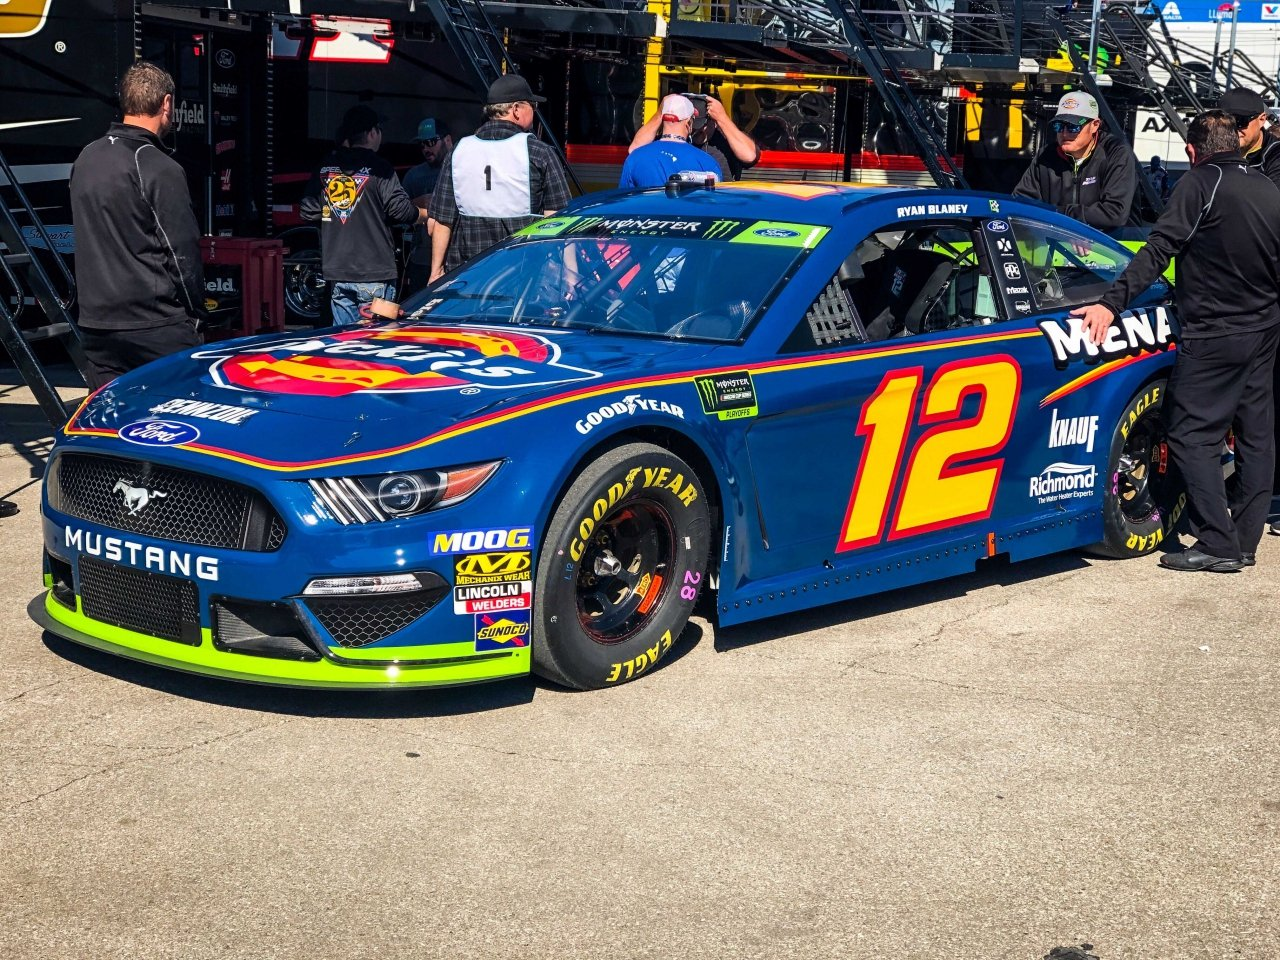 Ryan Blaney - Dickes Paint Scheme at Kansas Speedway - NASCAR Cup Series